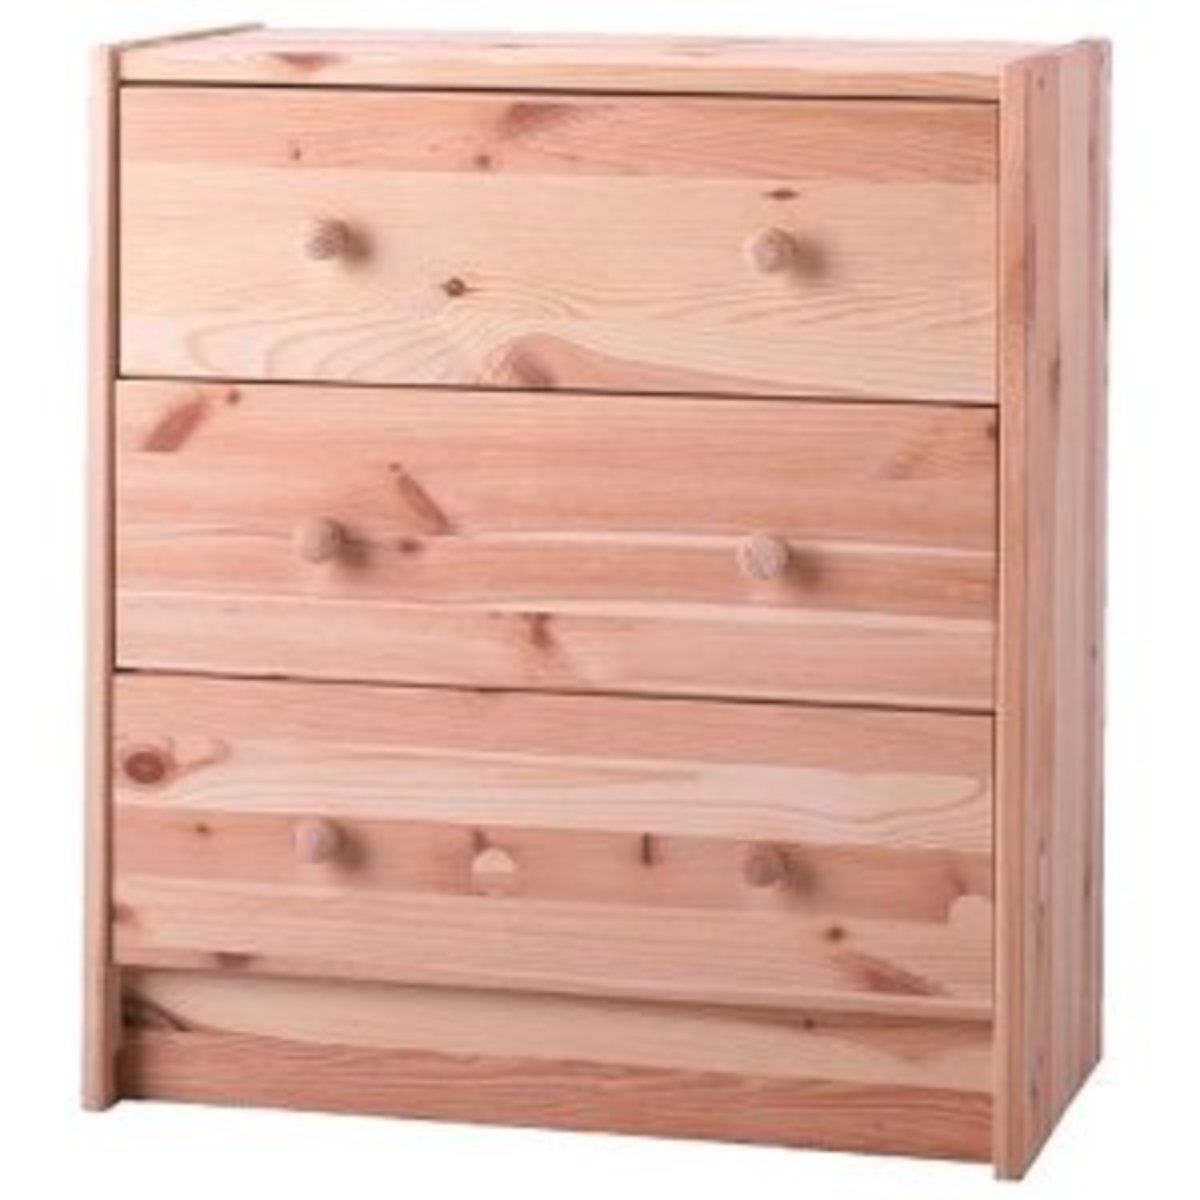 Ikea Assembly Instructions for Rast 3 Drawer Chest Dresser